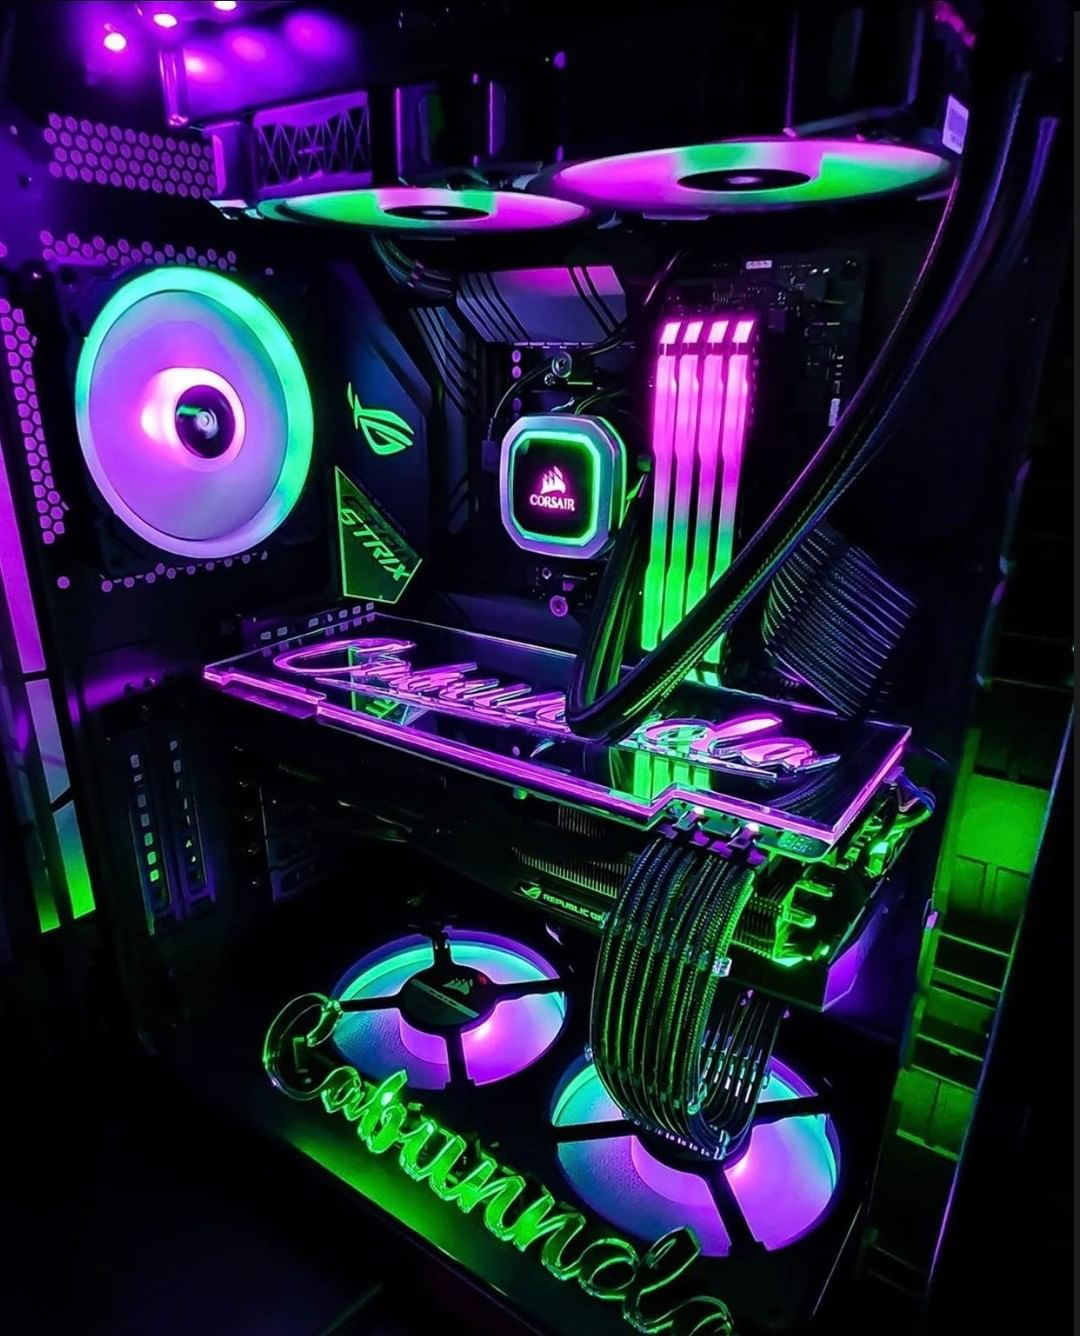 Love The Color Combo Between The Green And Purple Is This Rgb Overkill What Do You Think By Cabunnda Dark Green Aesthetic Green Pc Computer Gaming Room Pc case neon modding hd wallpaper